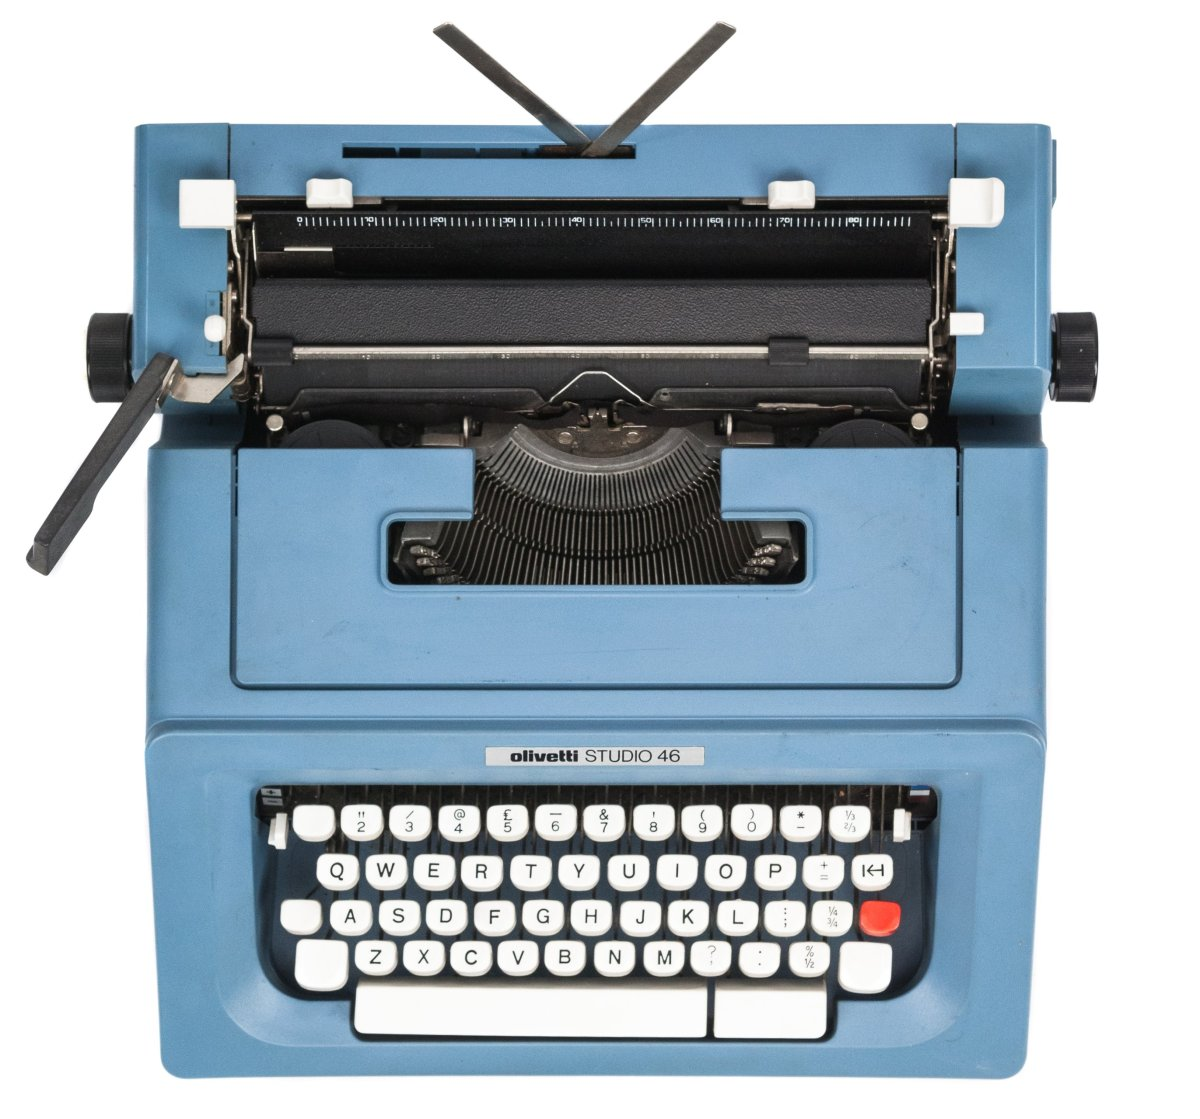 1976 - Olivetti Studio 46 Typewriter by Olivetti